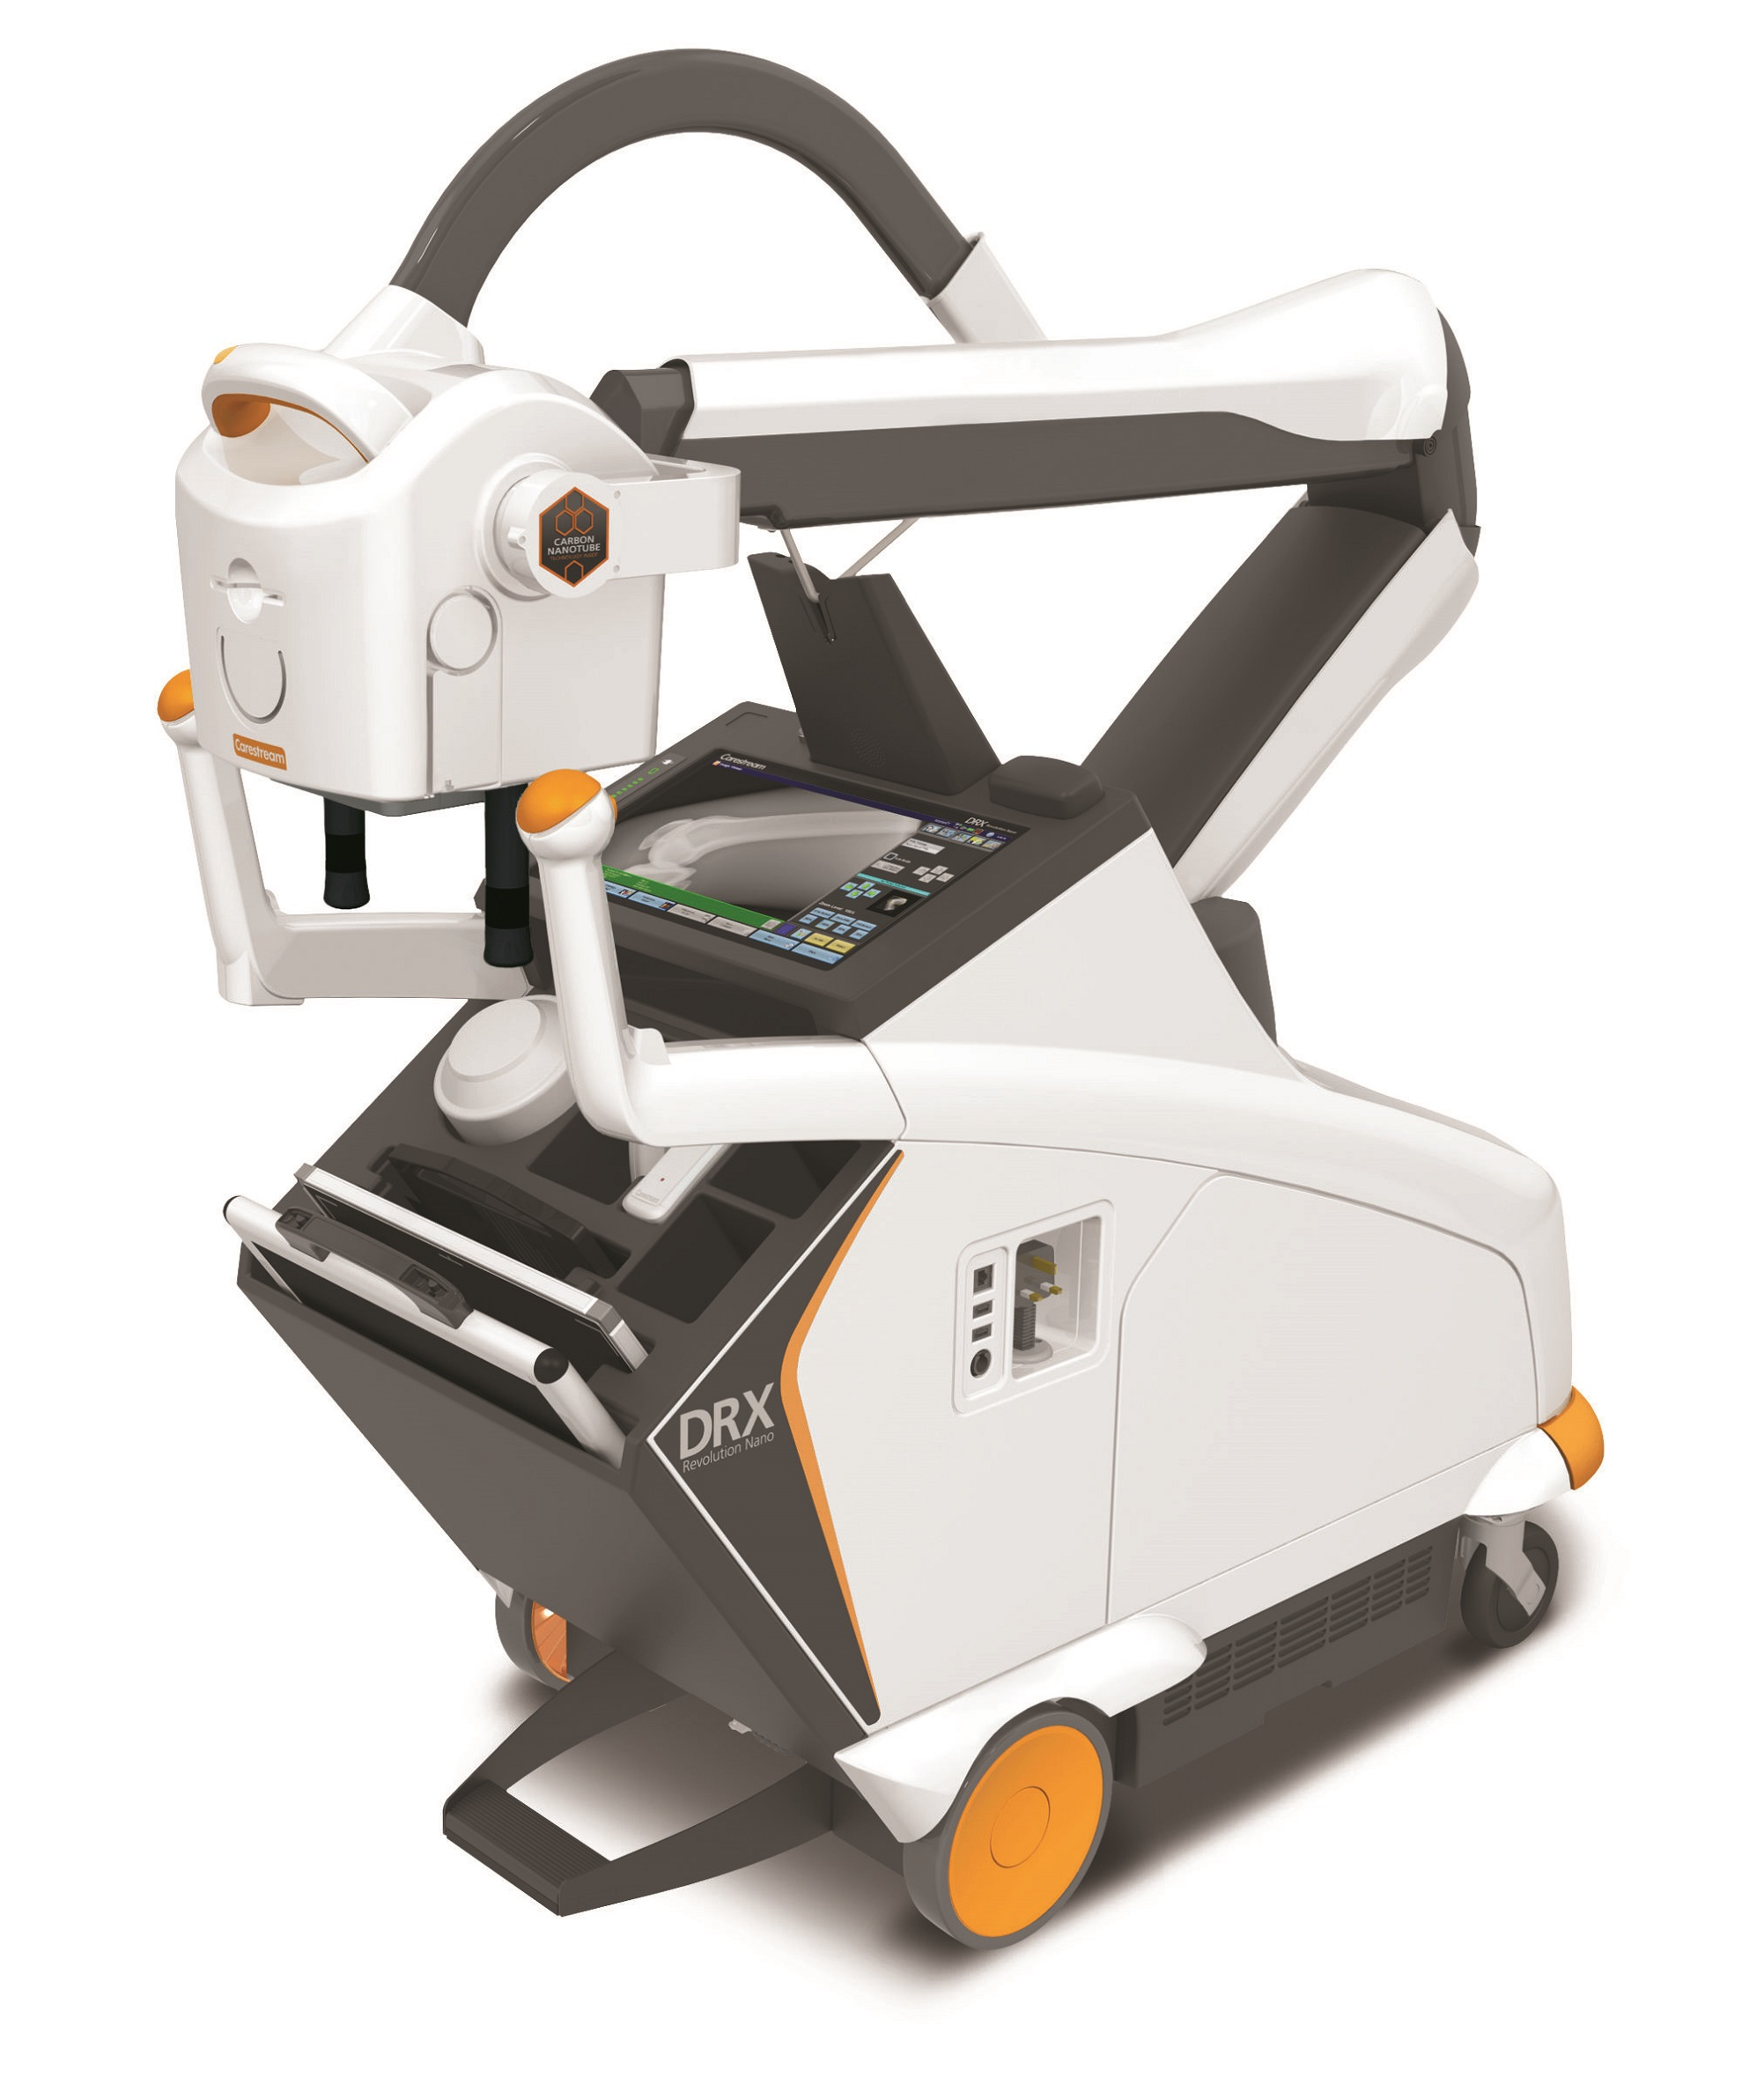 Carestream Shows Advanced Imaging Software, Flexible Portfolio of Mobile Imaging Systems at AHRA